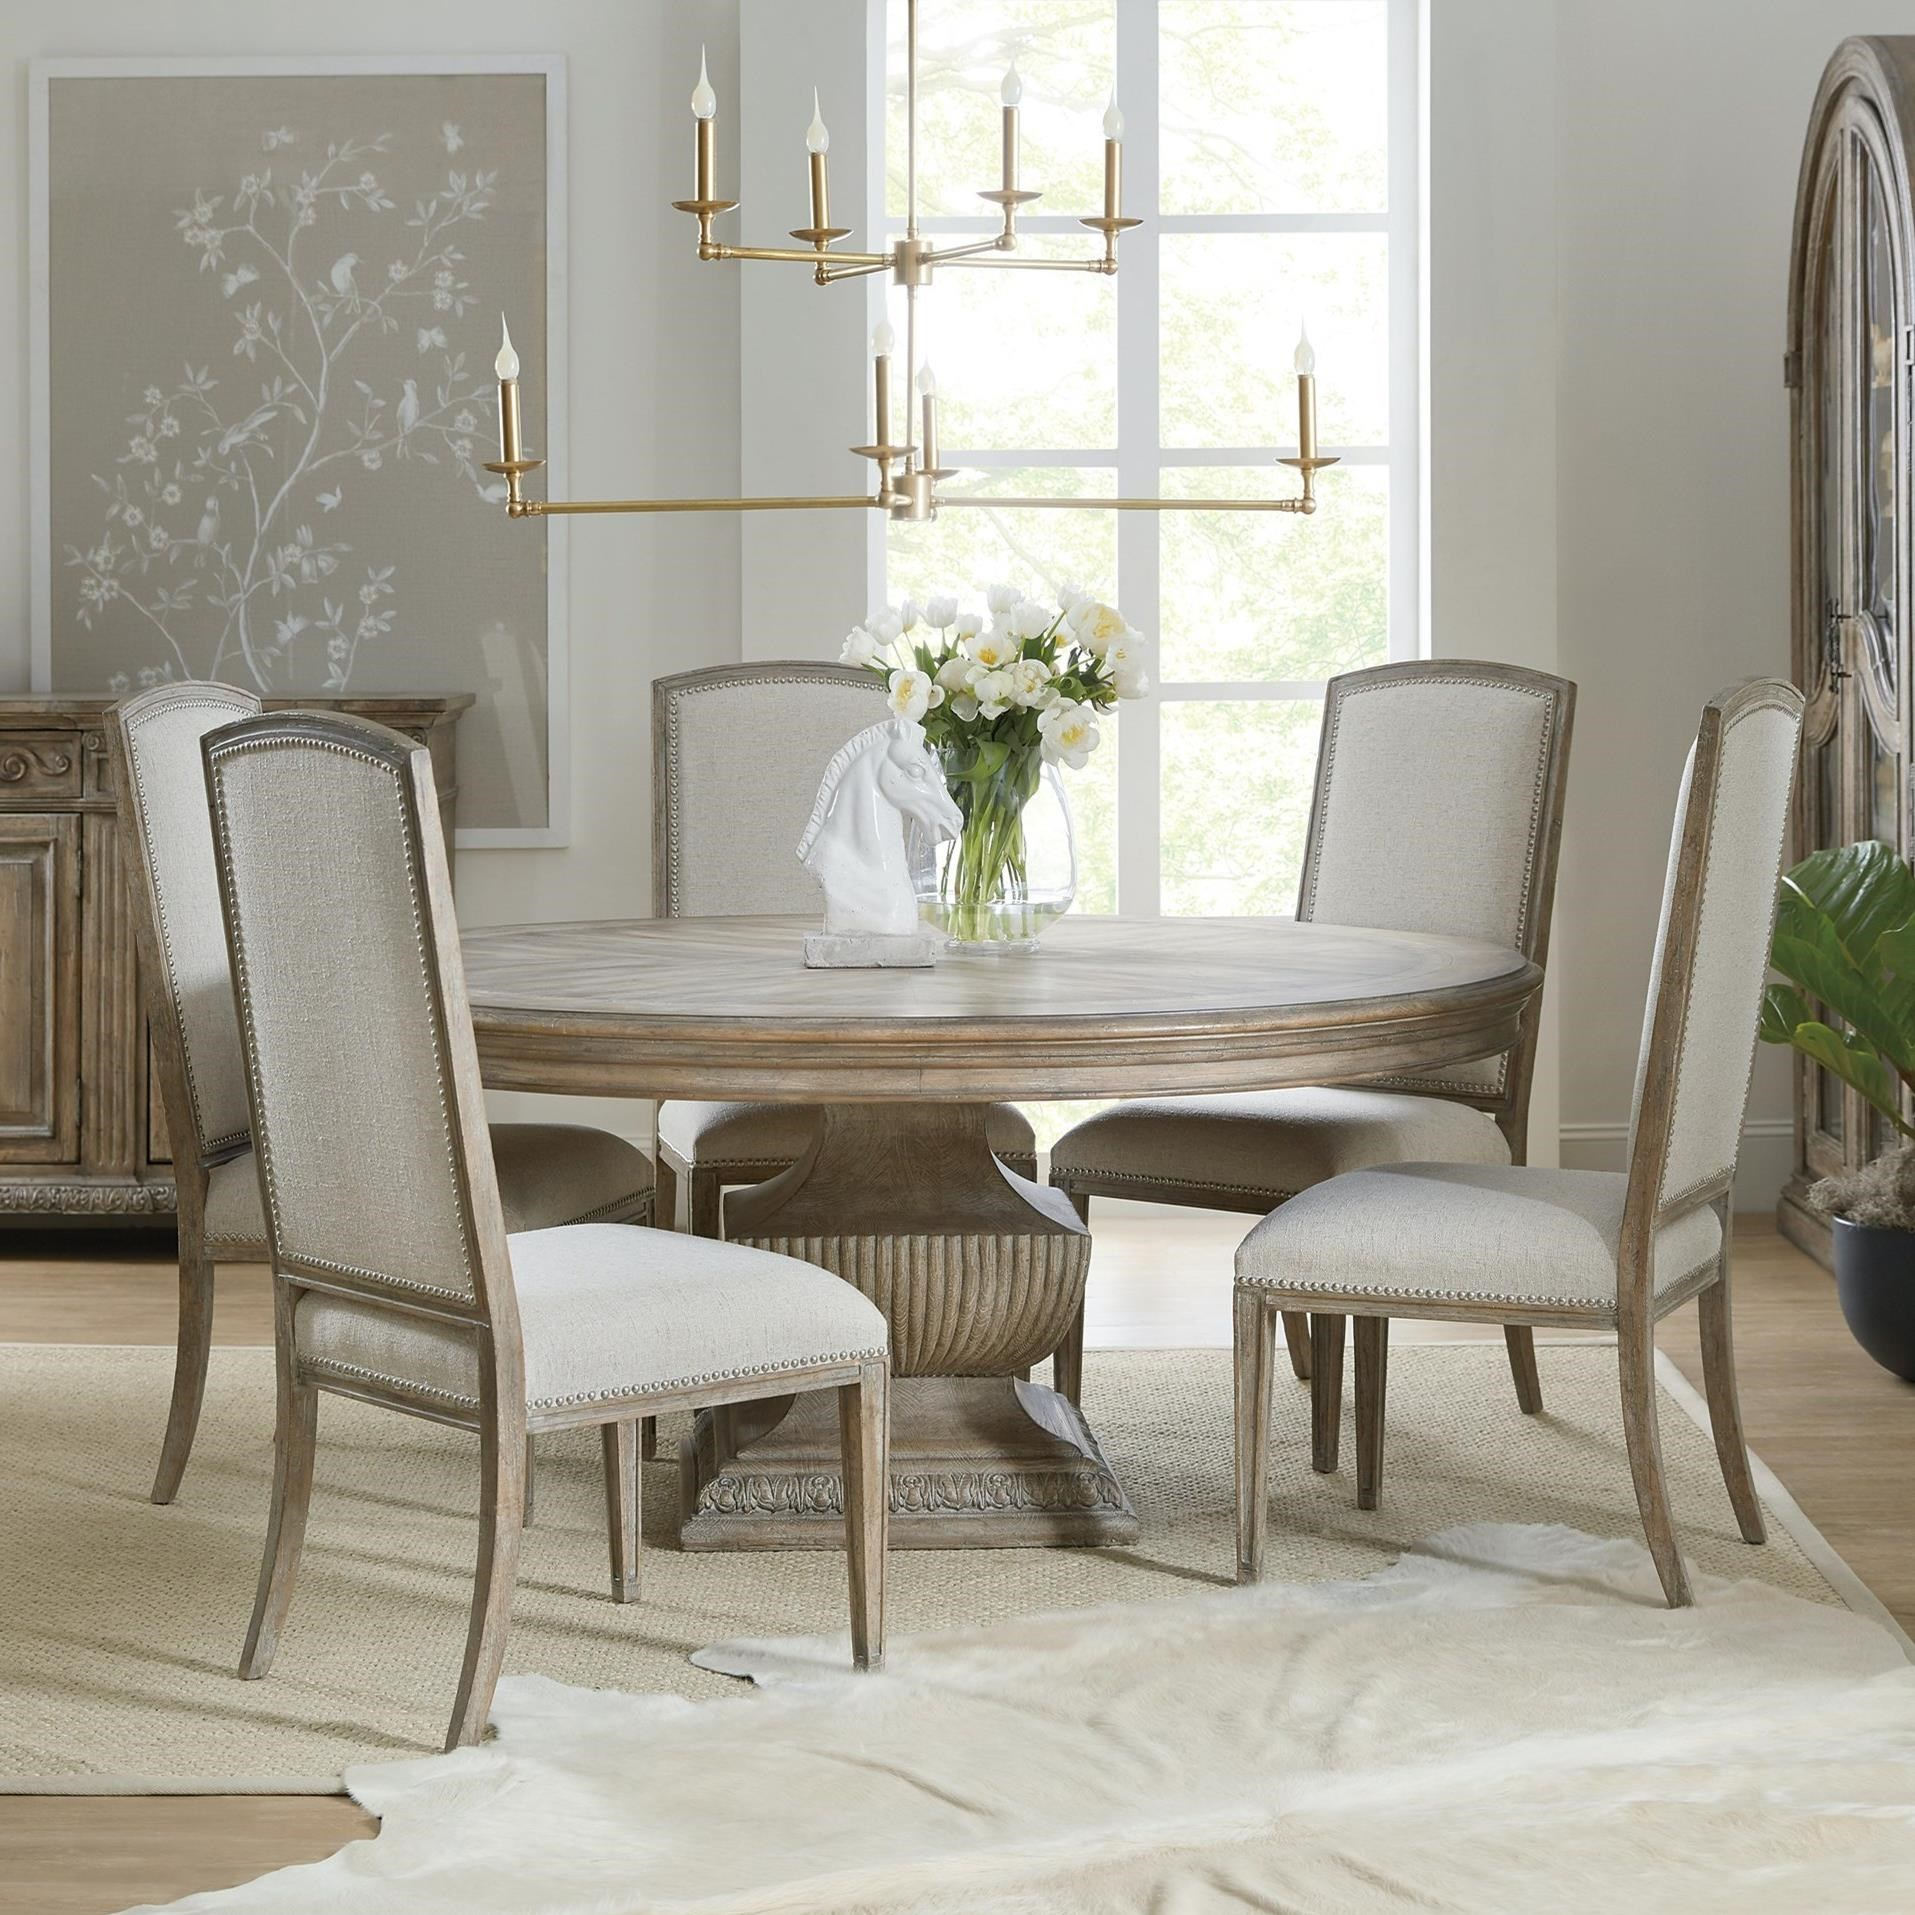 Castella 7-Piece Round Table and Chair Set by Hooker Furniture at Stoney Creek Furniture